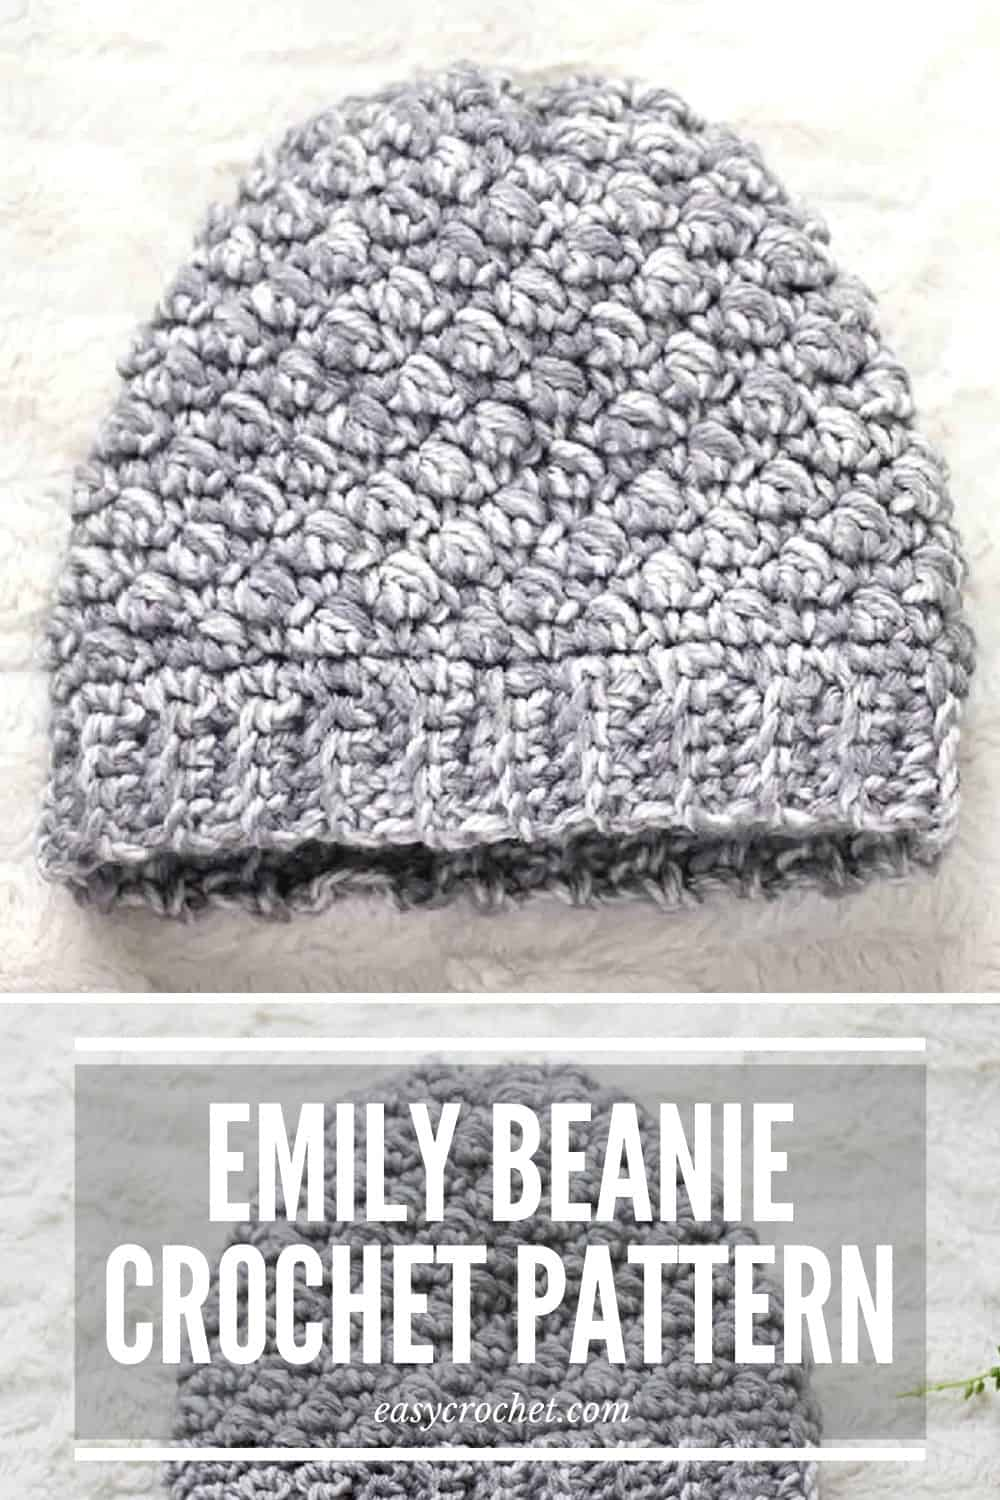 Emily Beanie Crochet Pattern - Make this free crochet hat pattern using a free crochet pattern from Easy Crochet- easycrochet.com via @easycrochetcom